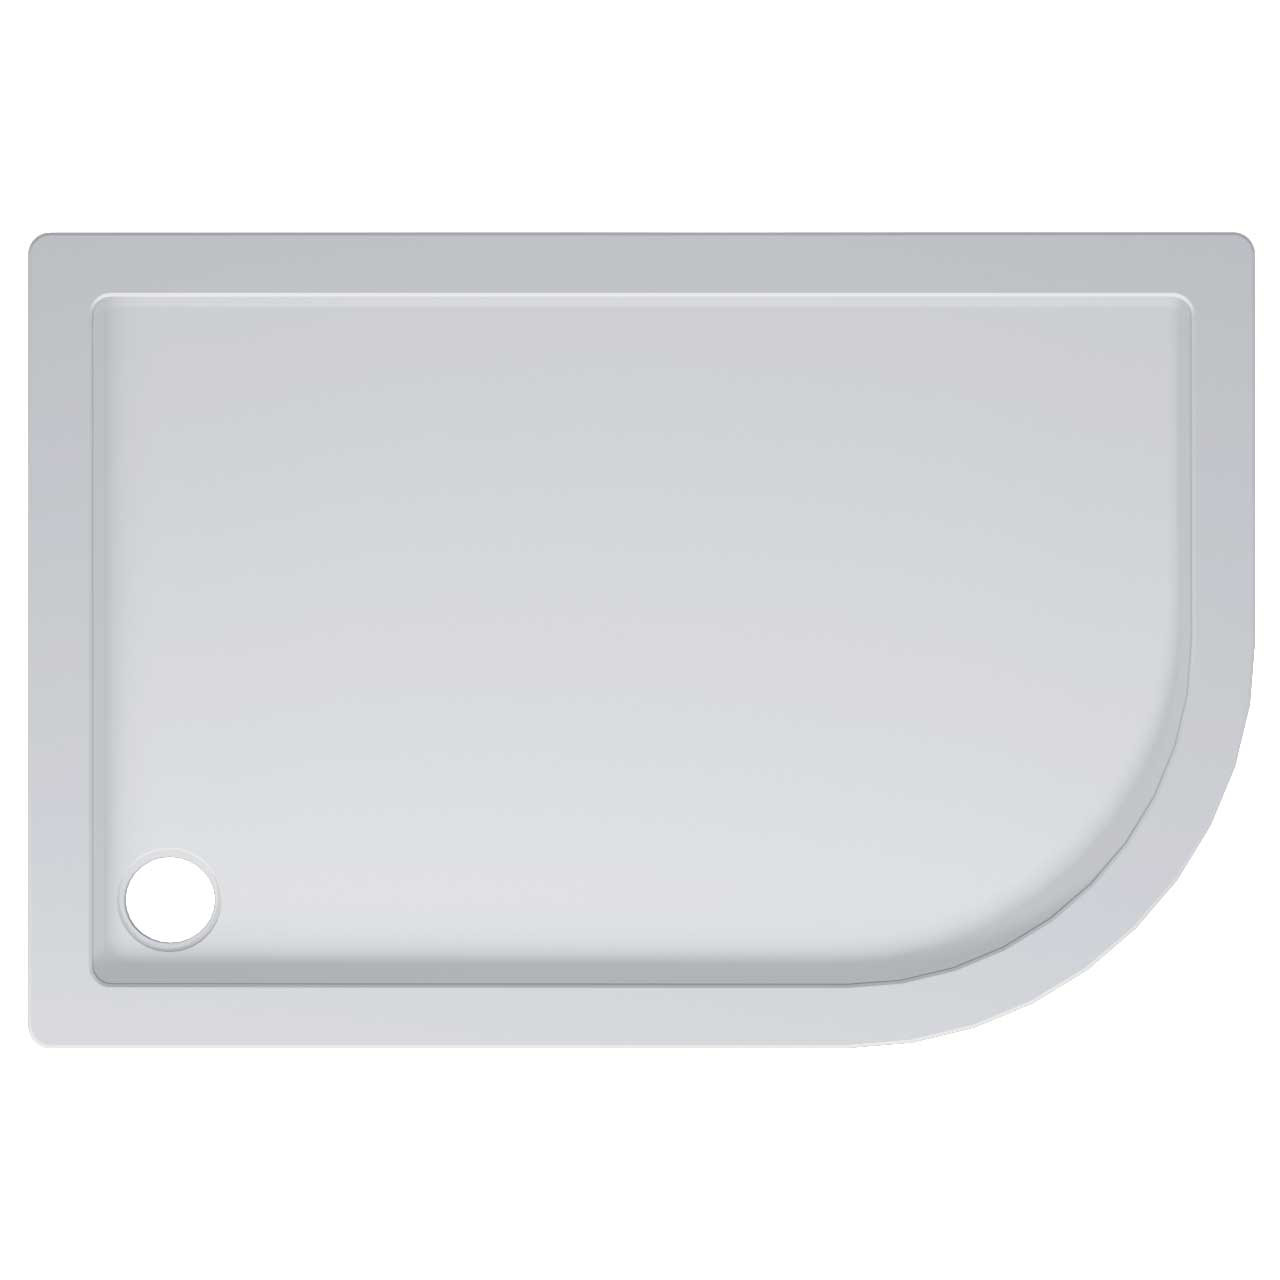 40mm Pearlstone 1200 x 800 Right Hand Offset Quadrant Shower Tray Top View